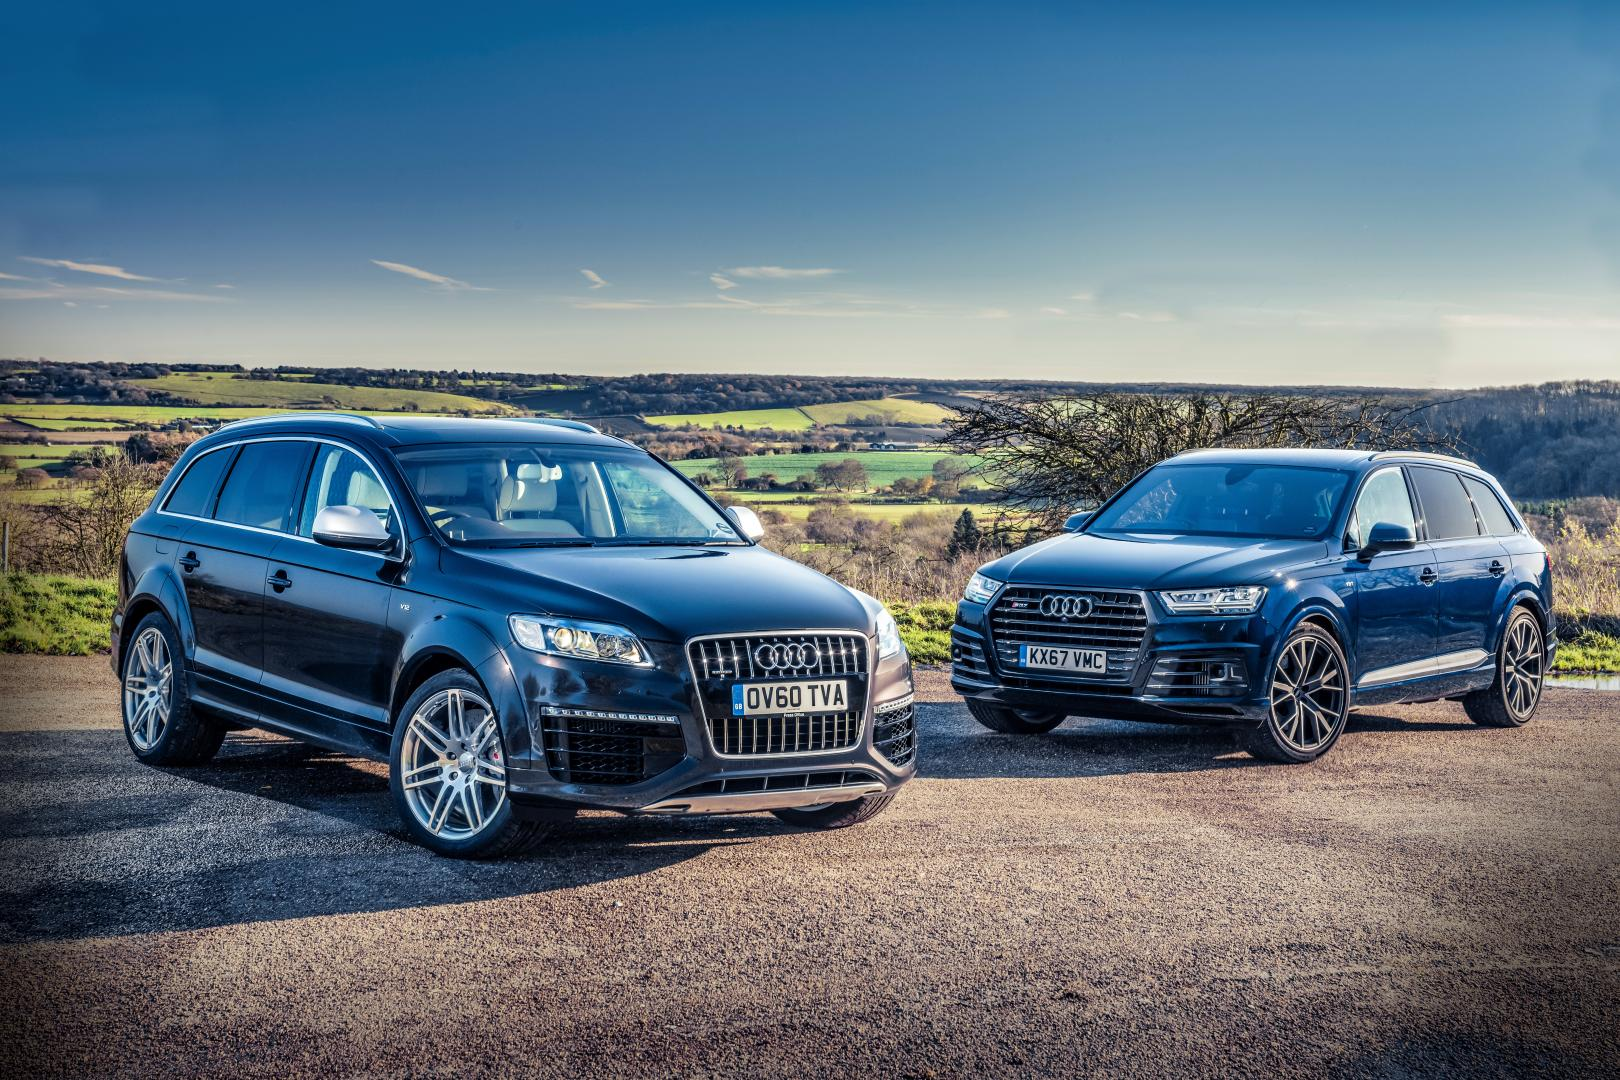 audi sq7 vs q7 v12 tdi v8 vs v12 topgear nederland. Black Bedroom Furniture Sets. Home Design Ideas